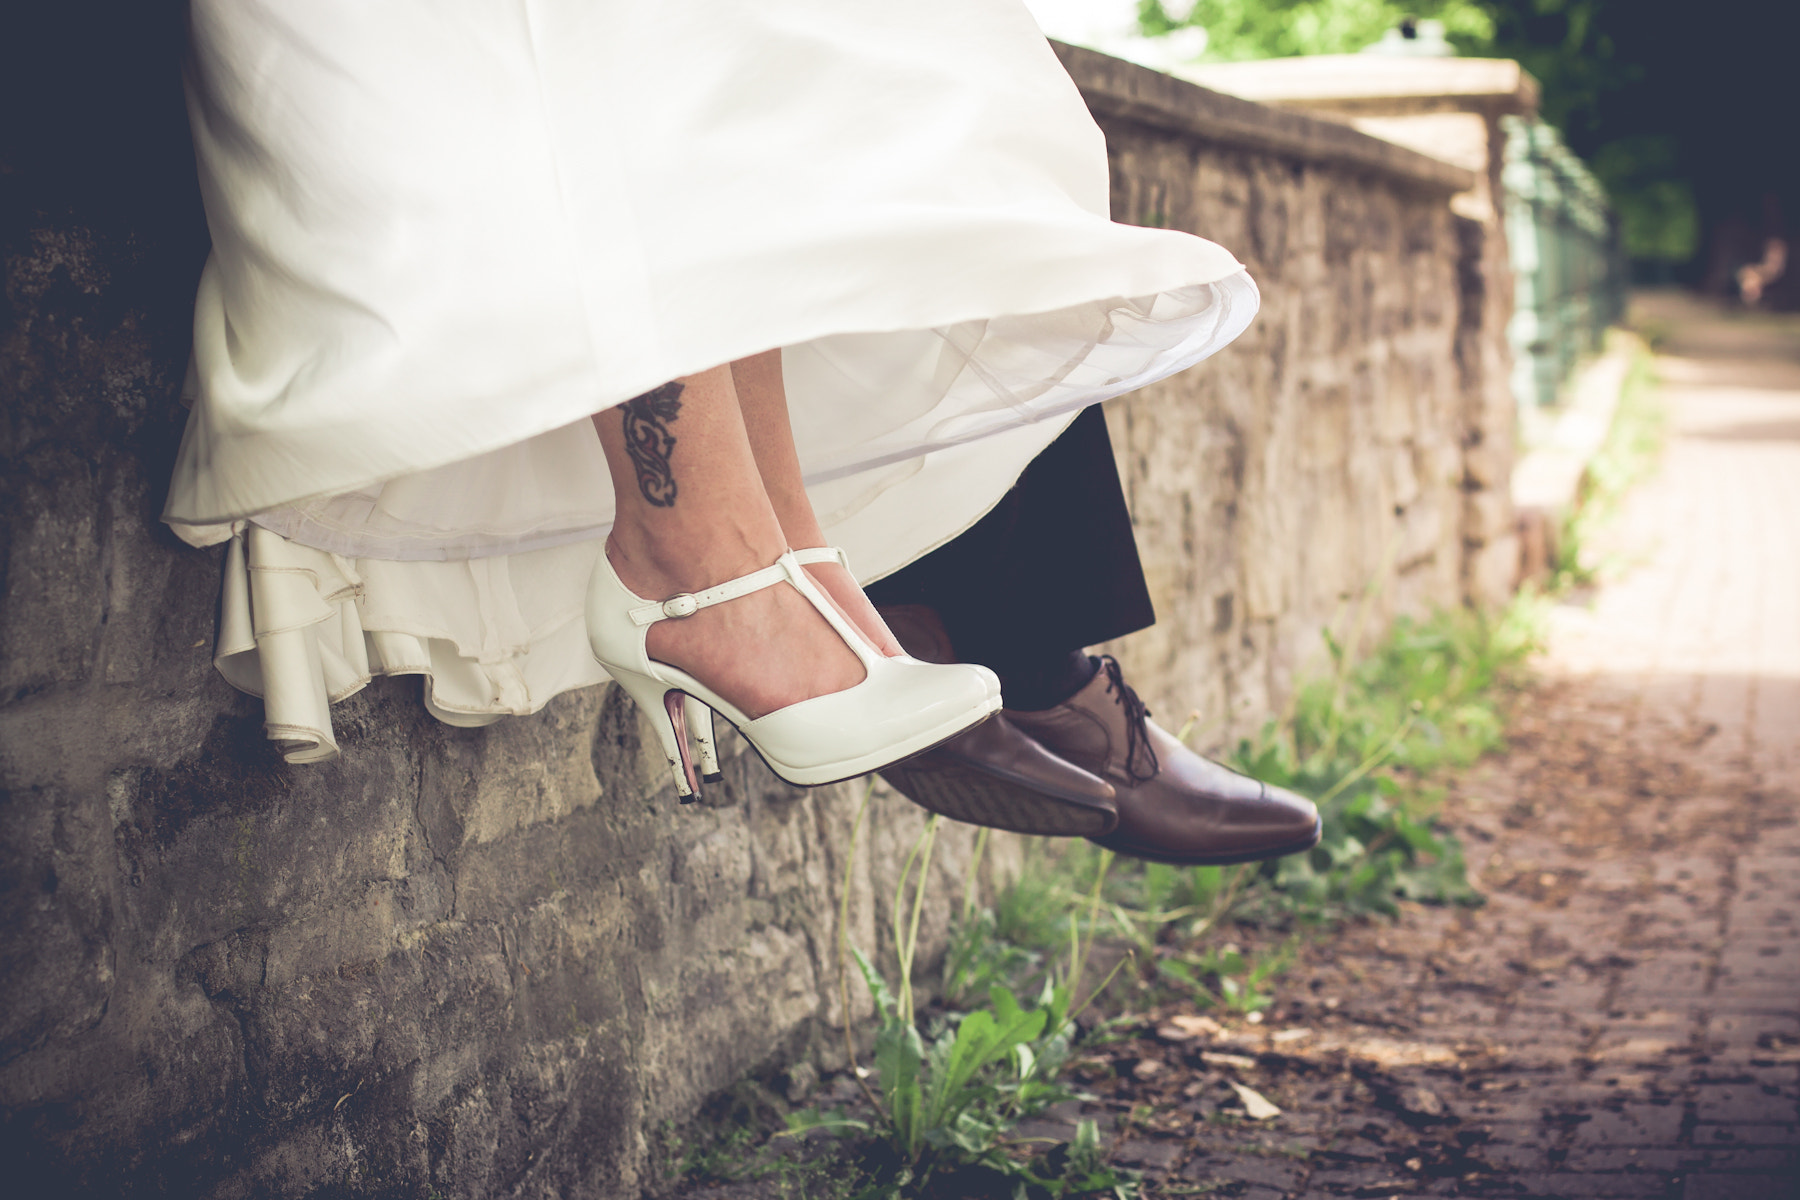 Photograph show me your feet by Andrea Schunert on 500px